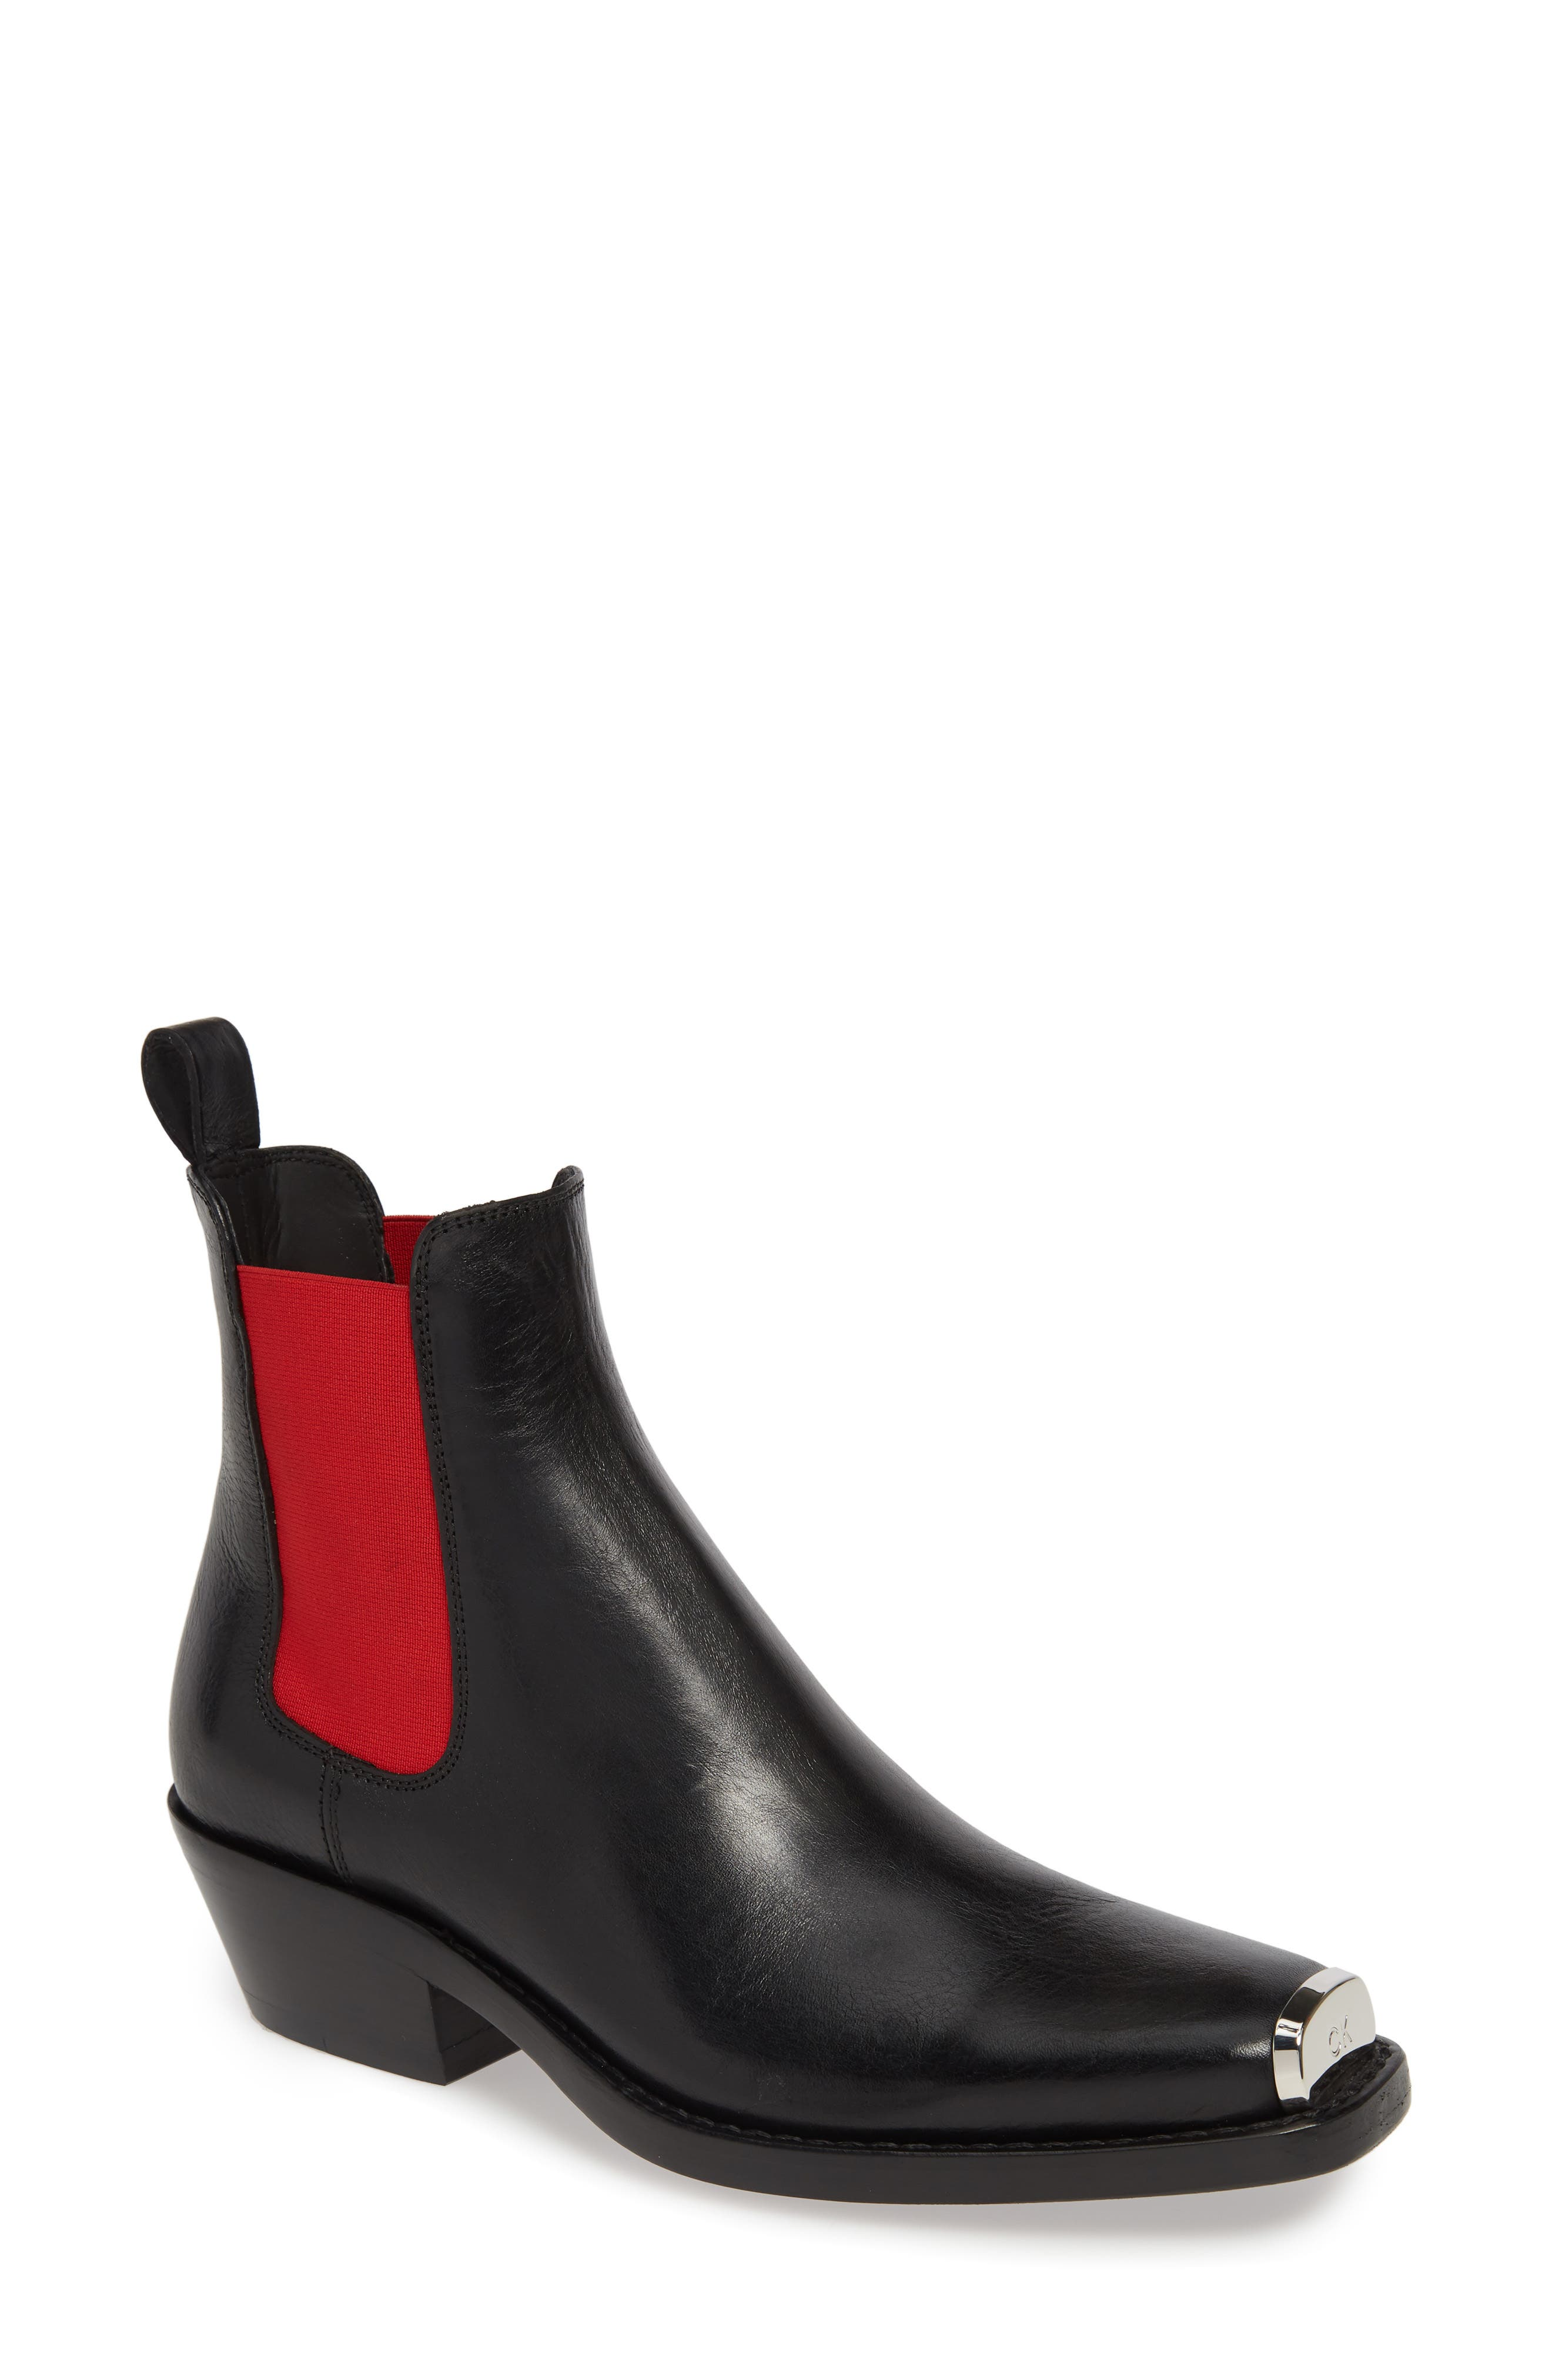 Calvin Klein 205W39Nyc Claire Western Chelsea Boot, Black